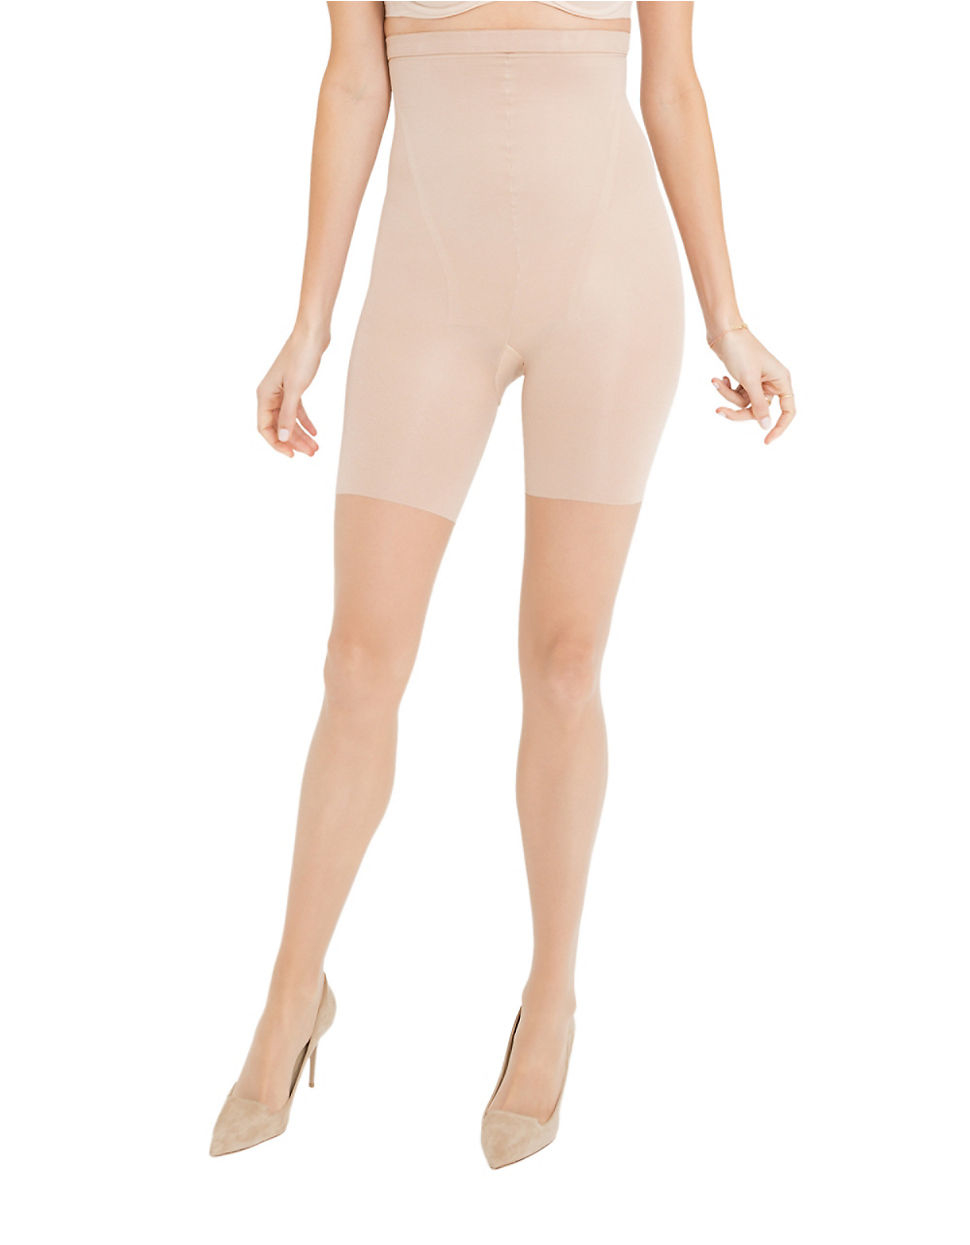 spanx in power line high waist super shaping sheer pantyhose in pink lyst. Black Bedroom Furniture Sets. Home Design Ideas